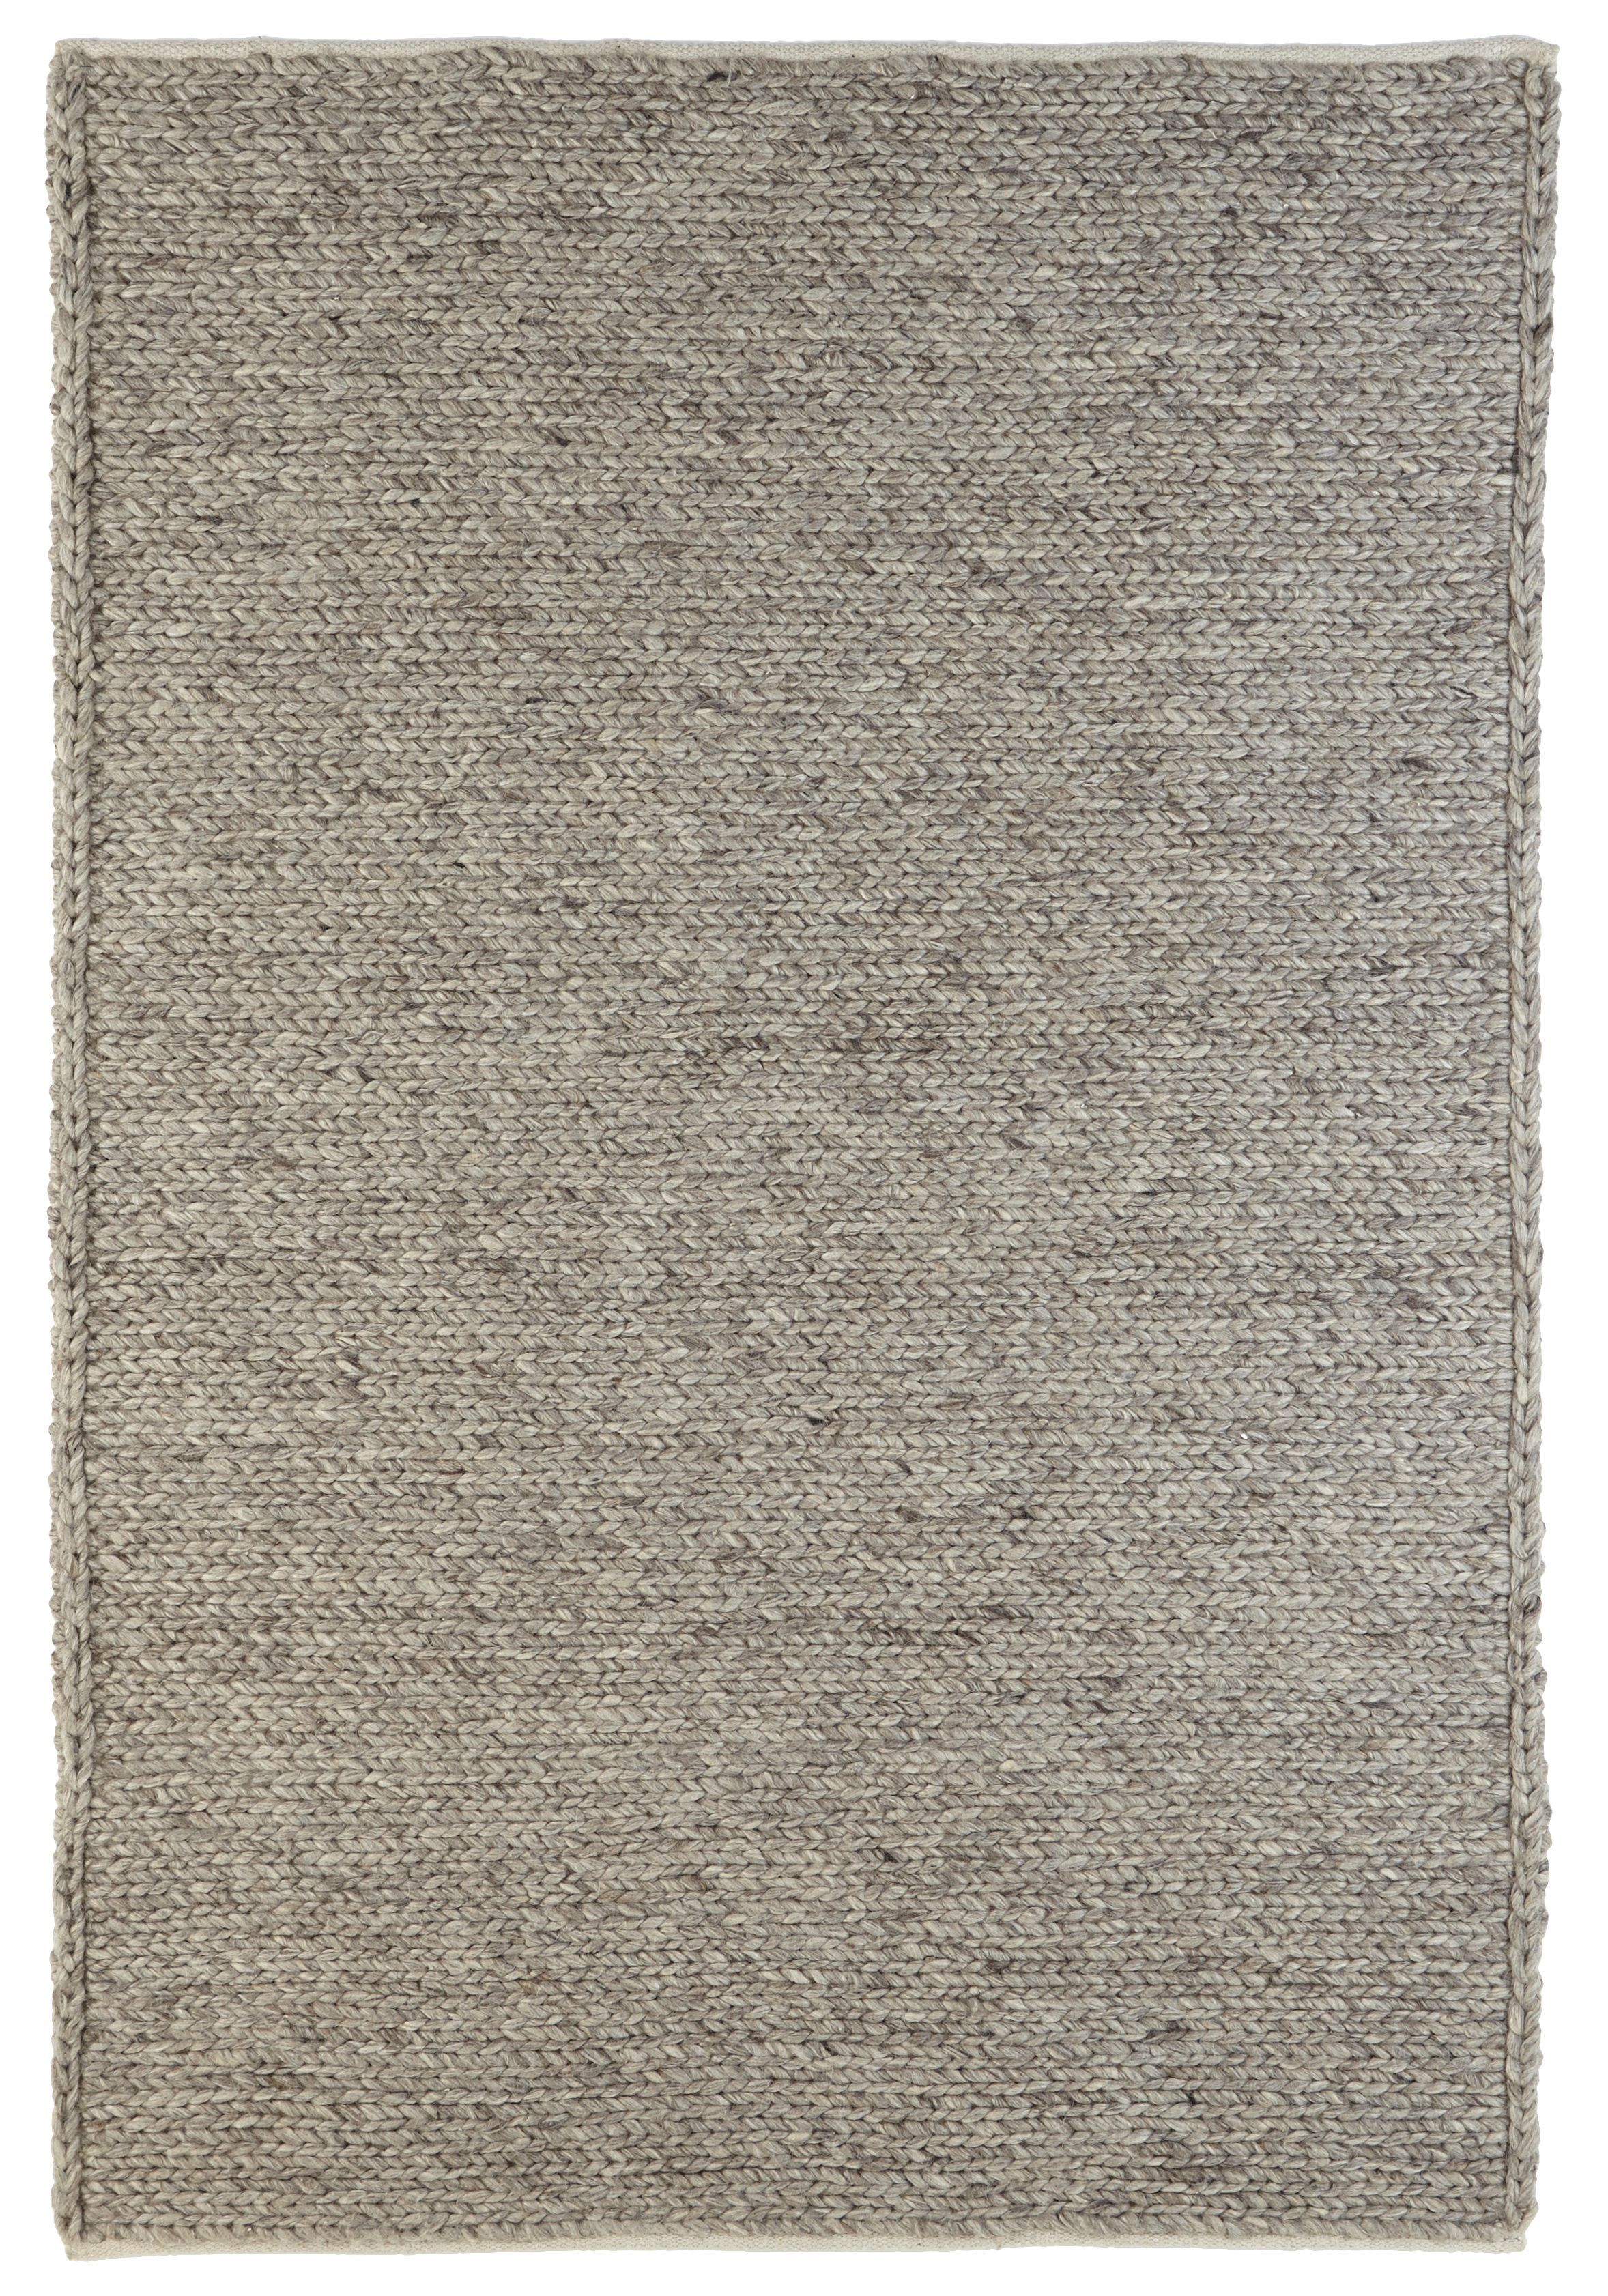 Colours Claudine Grey Thick Knit Rug L 2 3m W 1 6 M Departments Diy At B Q